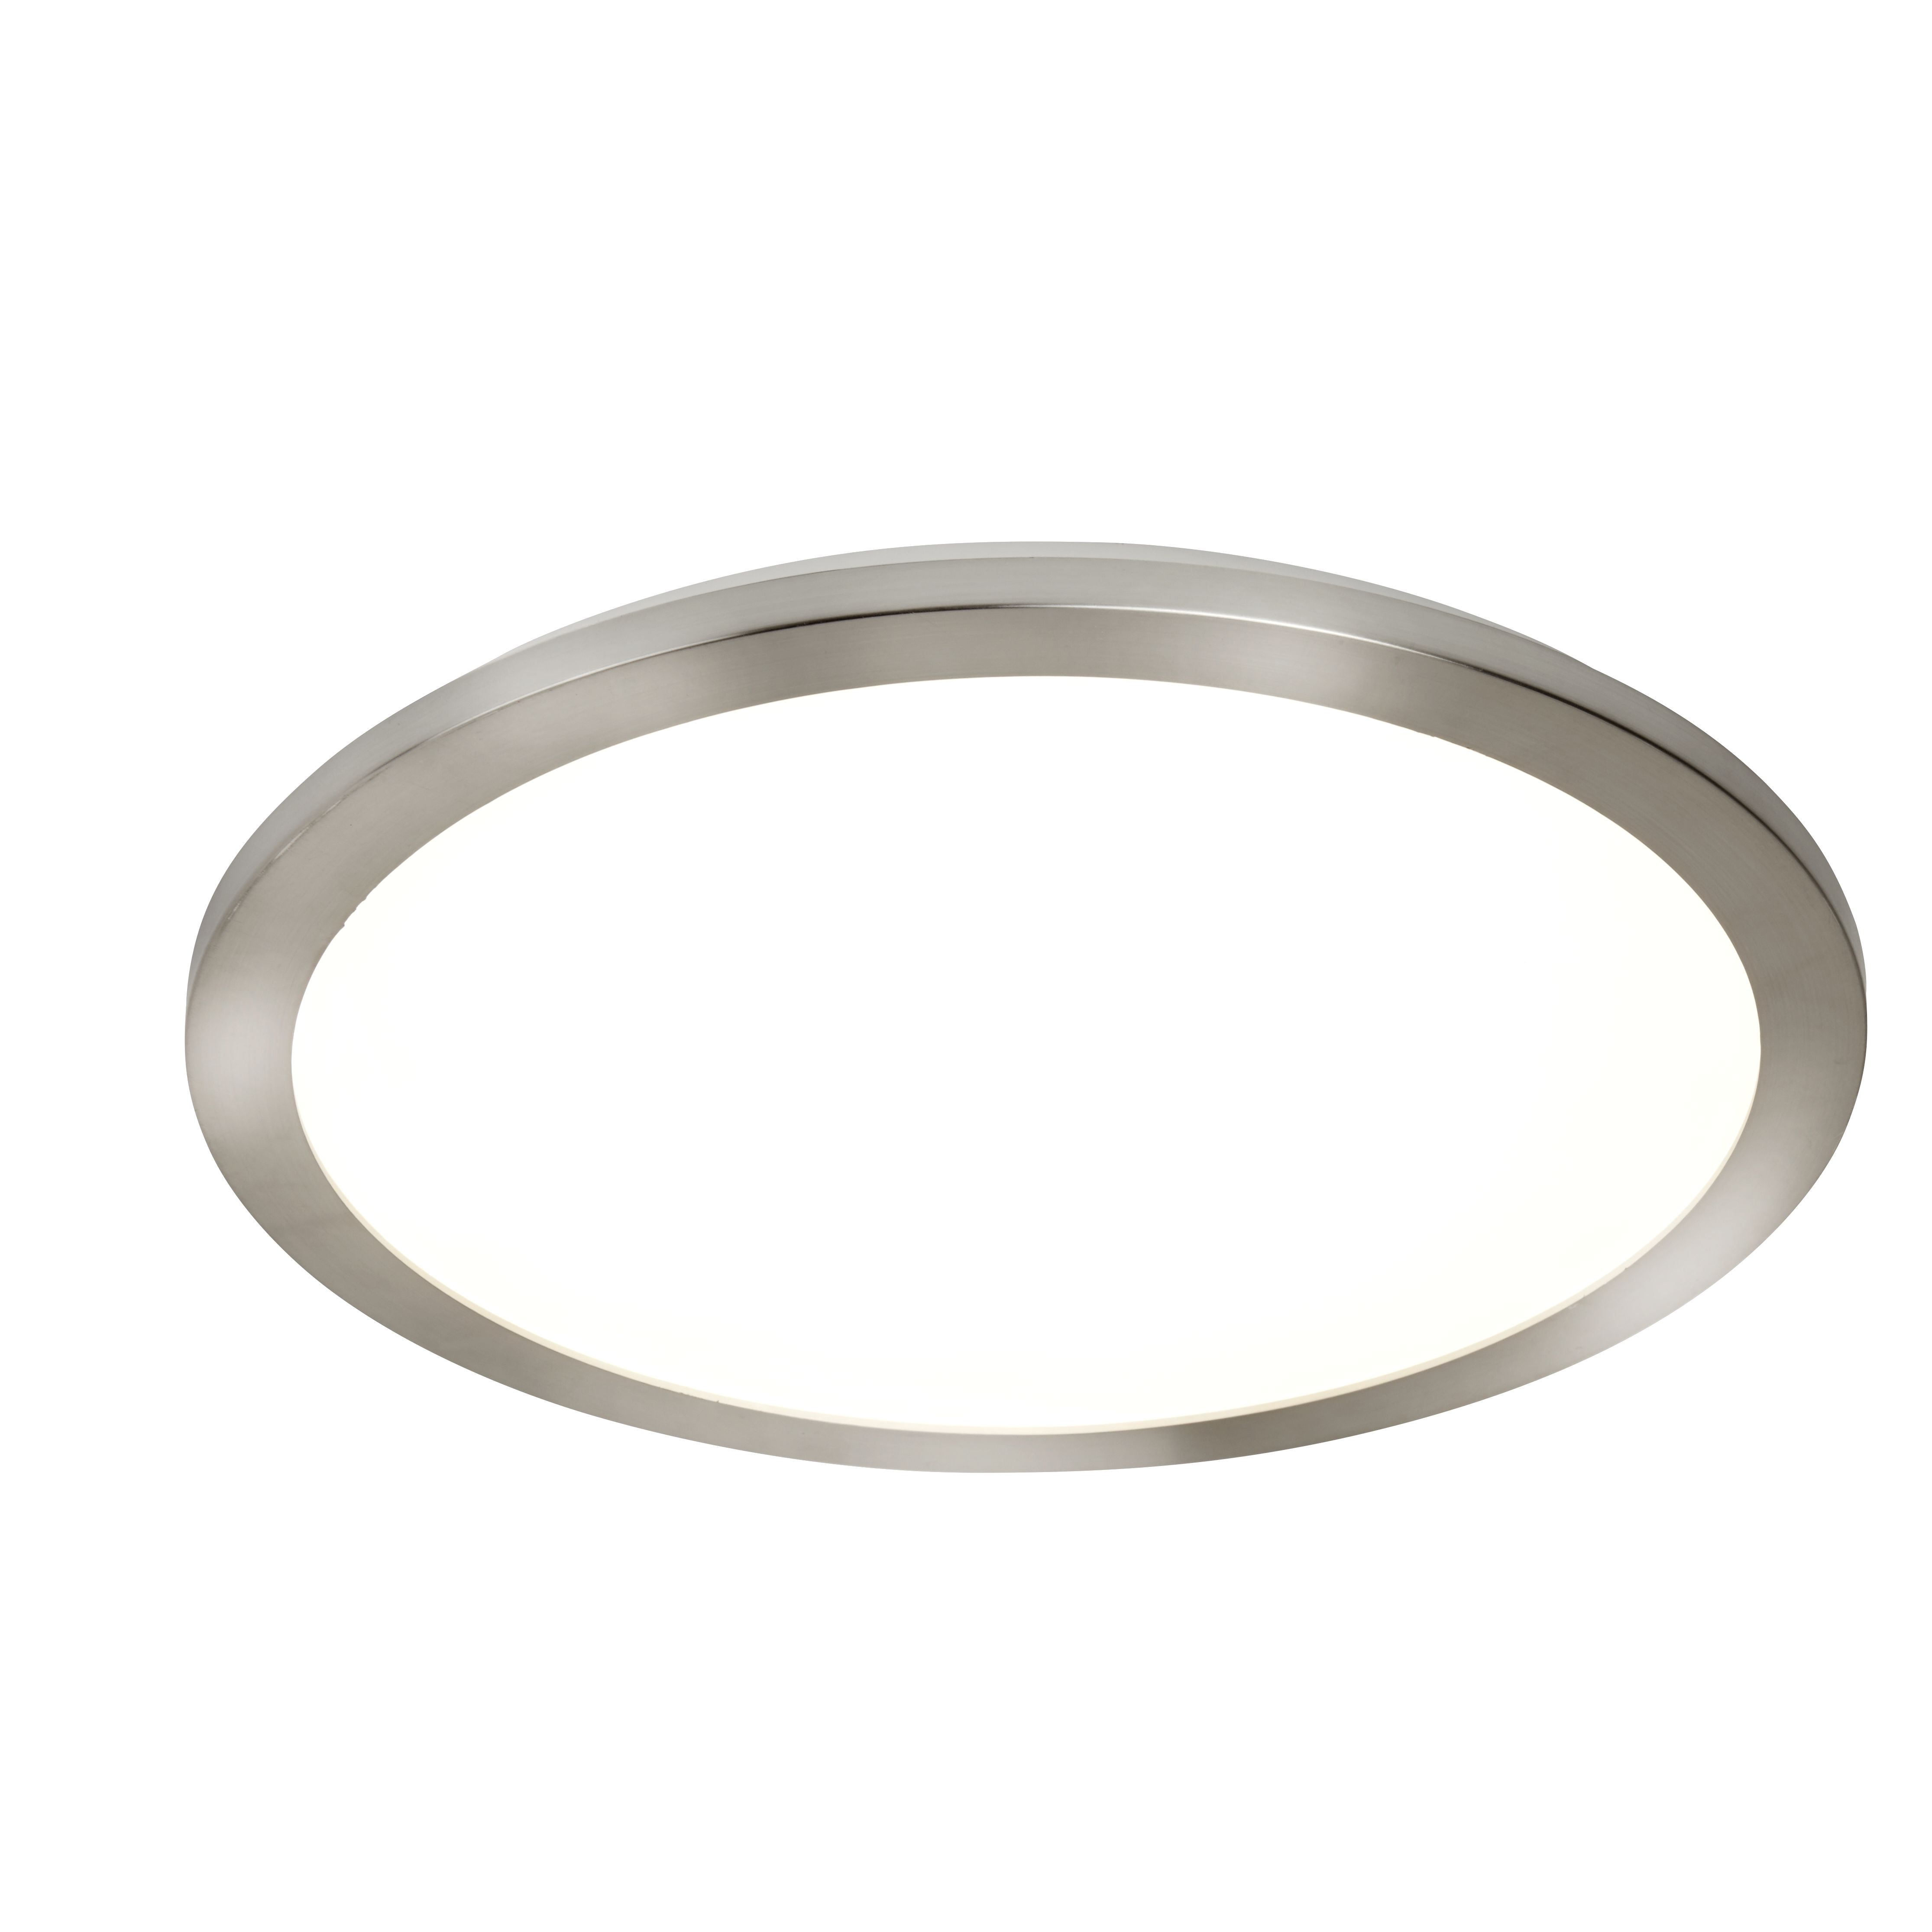 Searchlight 702SS Satin Silver Round Flush Ceiling Light Fixture